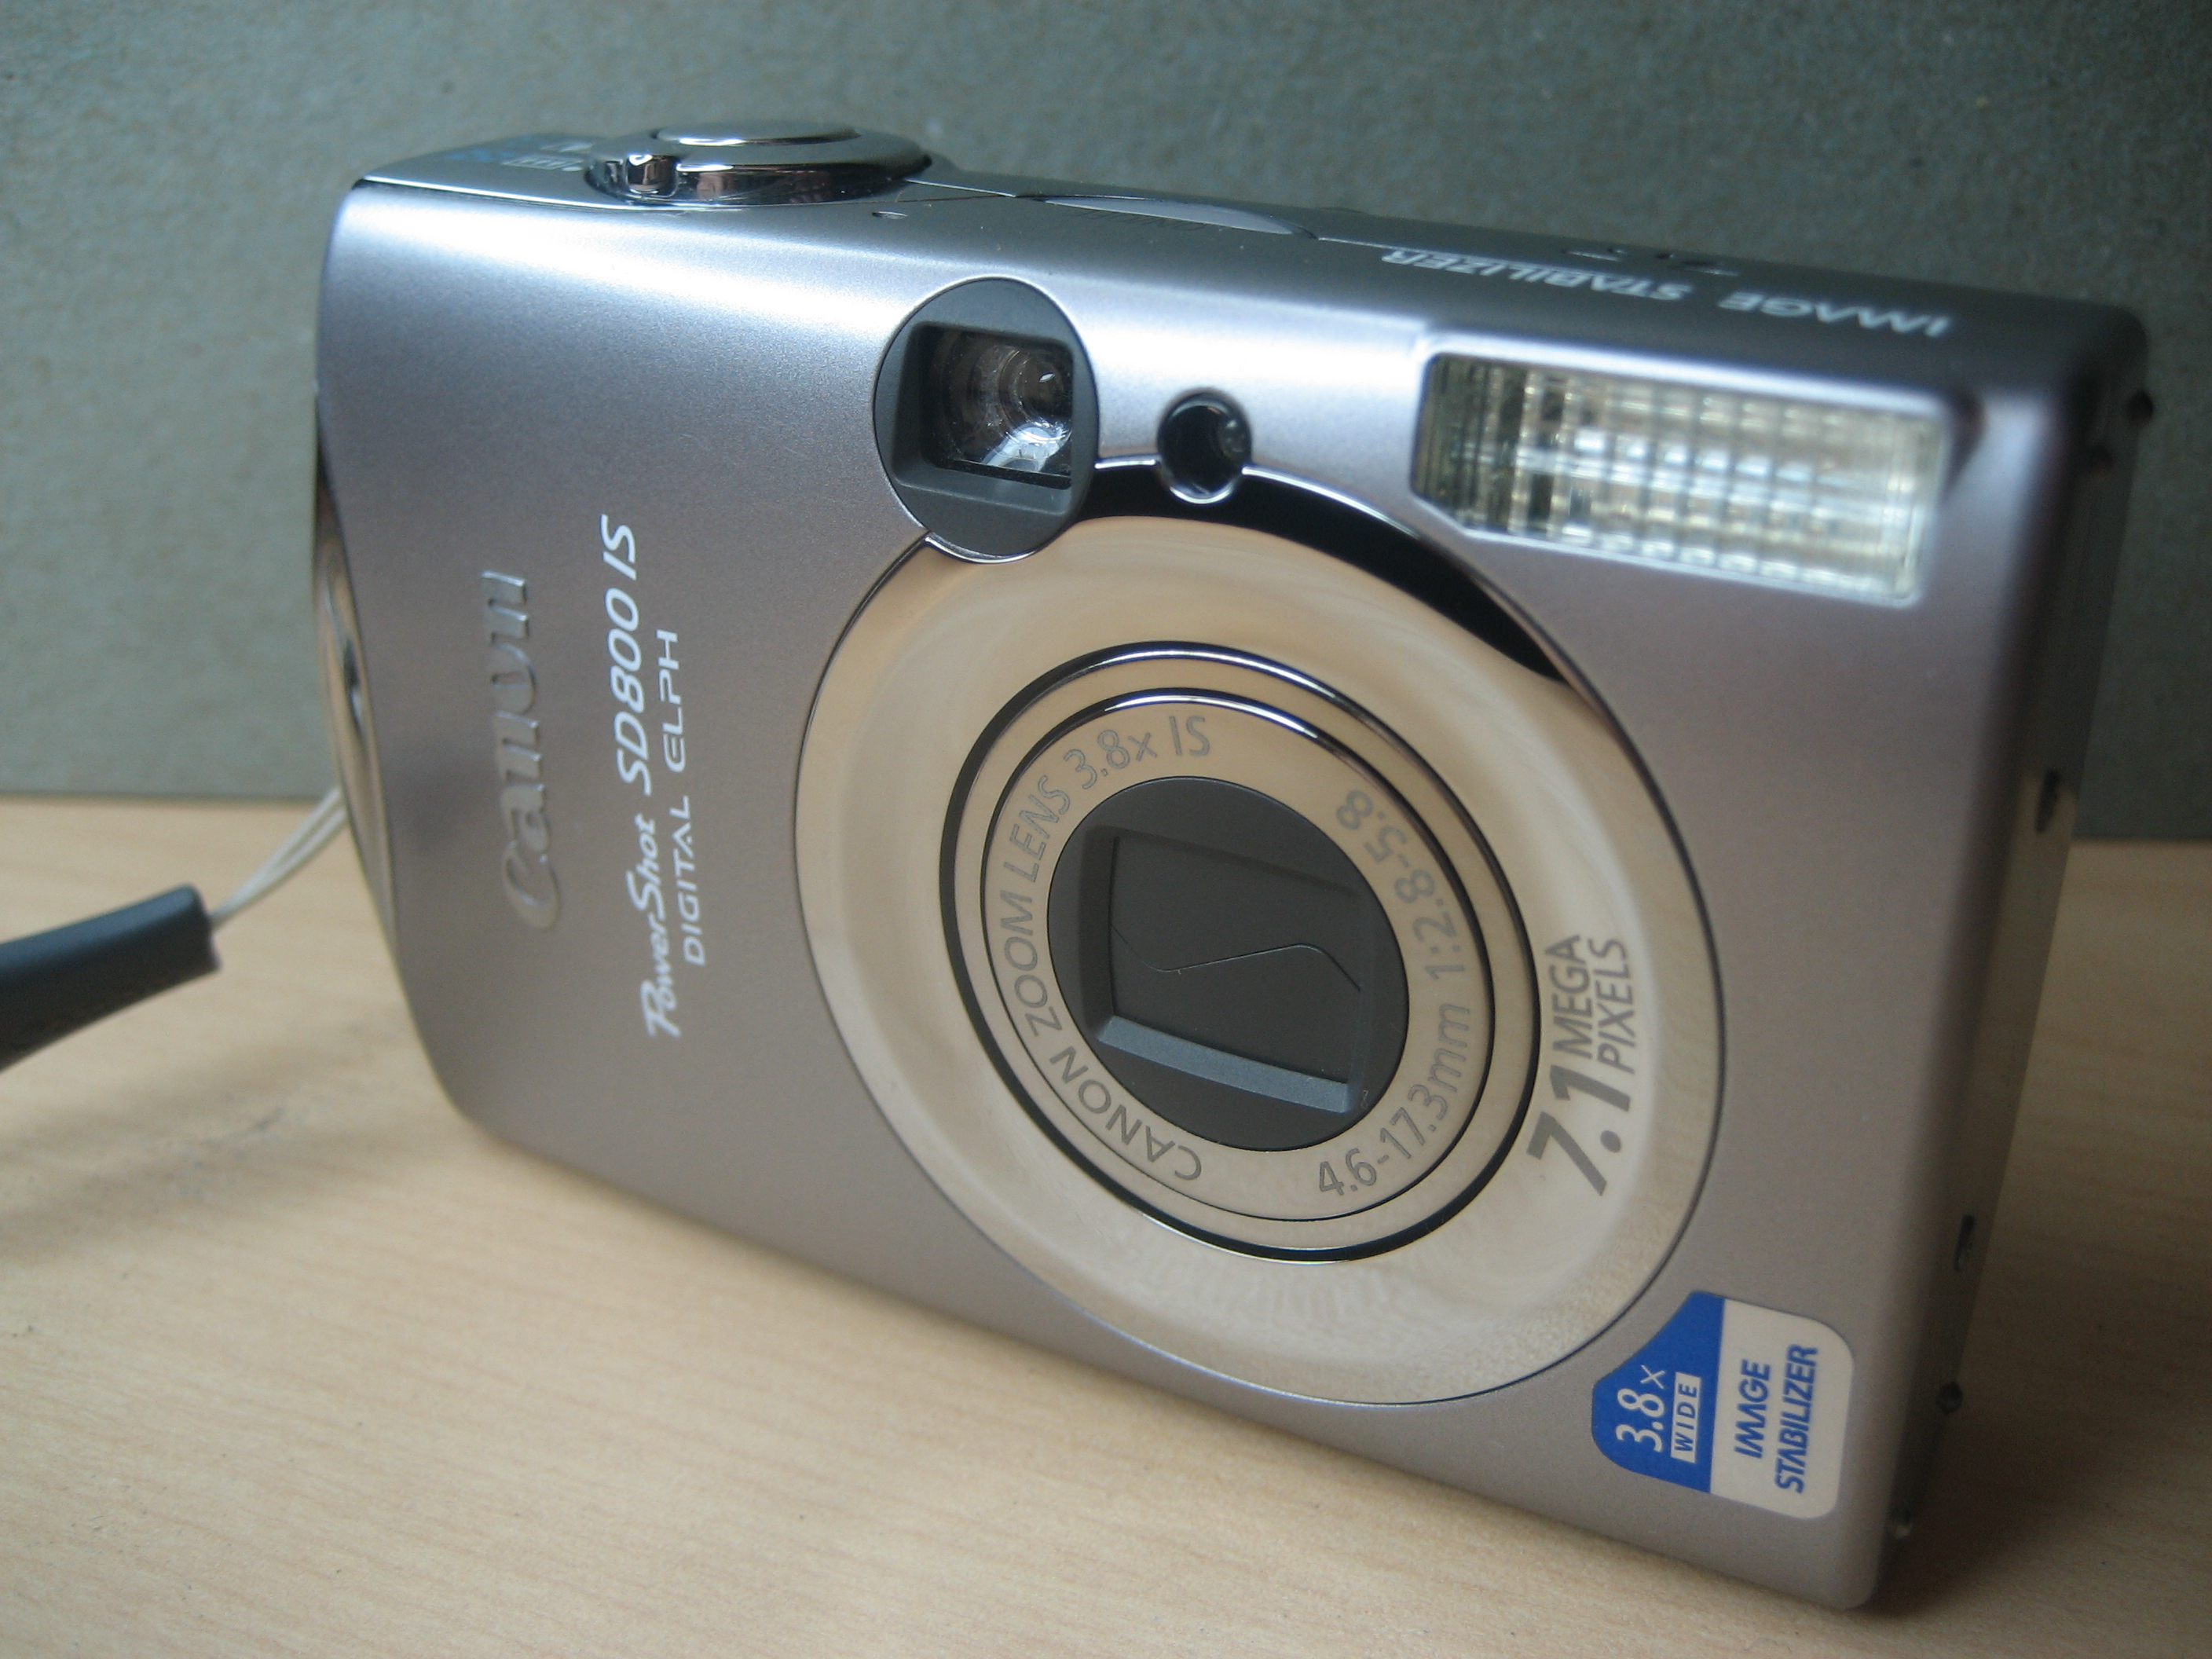 CANON SD800IS DRIVERS FOR MAC